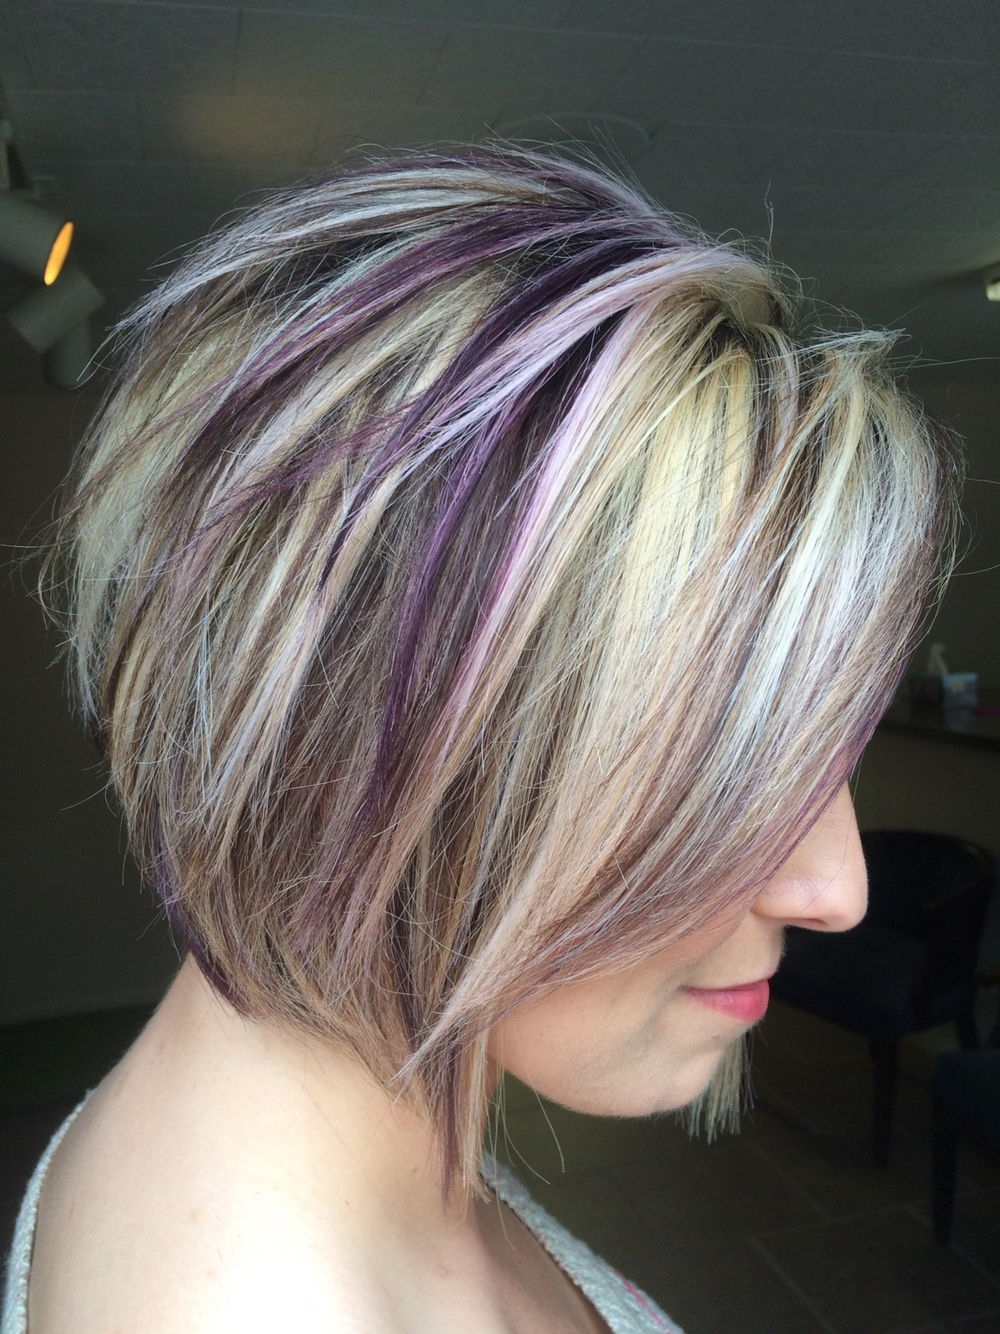 Purple Highlights! … | Short And Sassy Hair Styles In 2018… Inside Short Ruffled Hairstyles With Blonde Highlights (View 15 of 20)